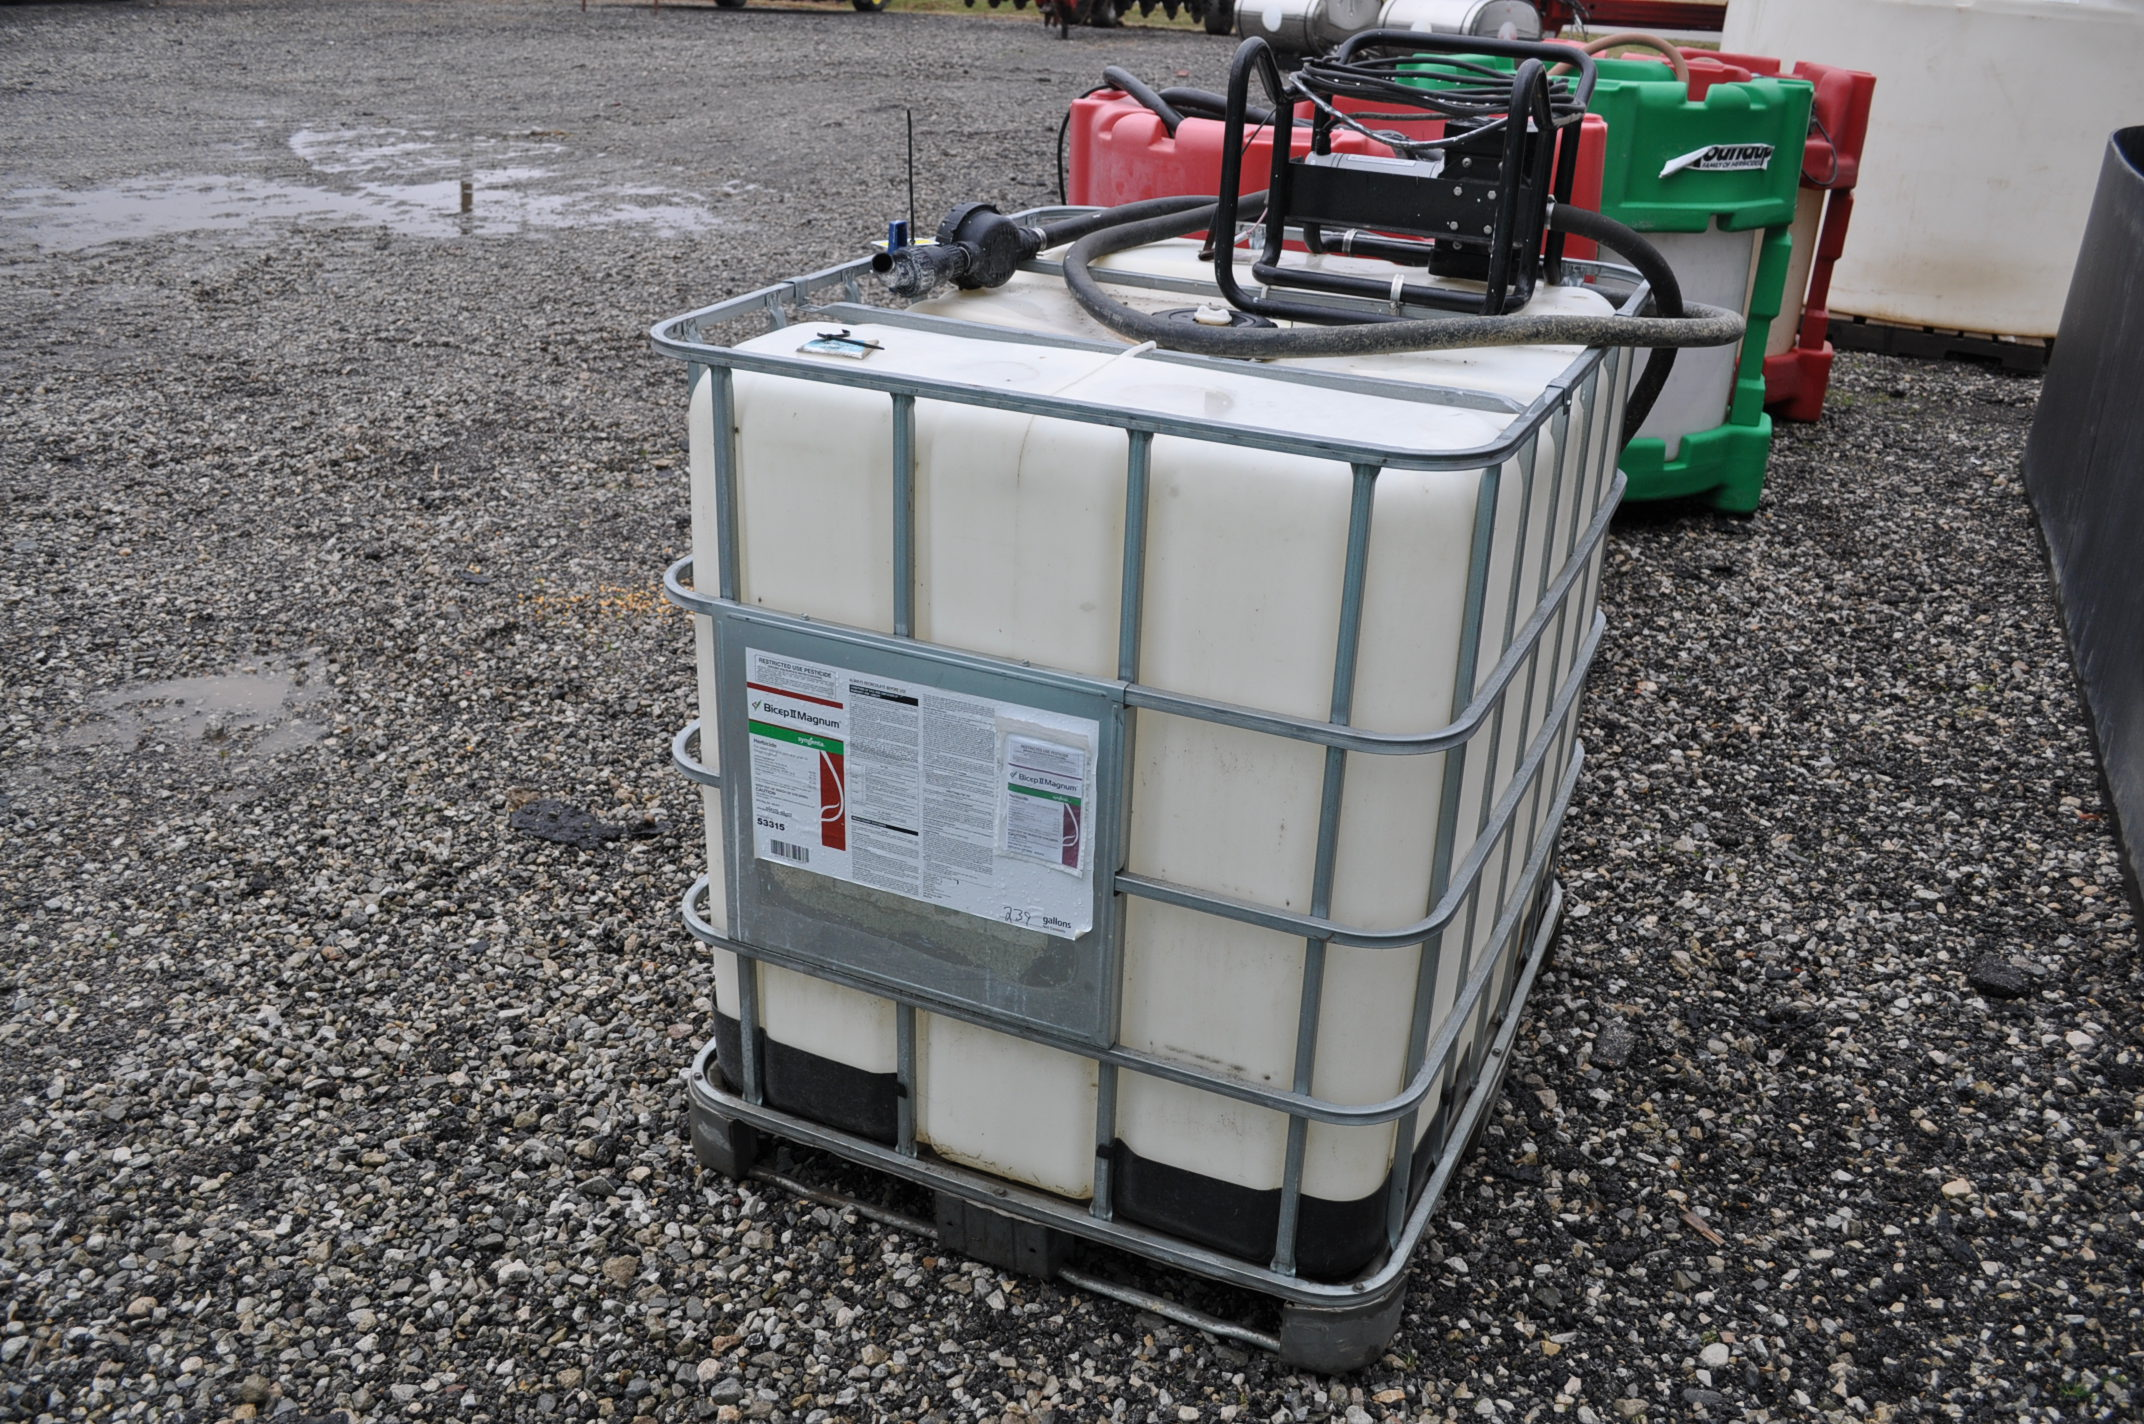 265 gal chemical cage tank with 12volt pump, meter and hose - Image 2 of 2